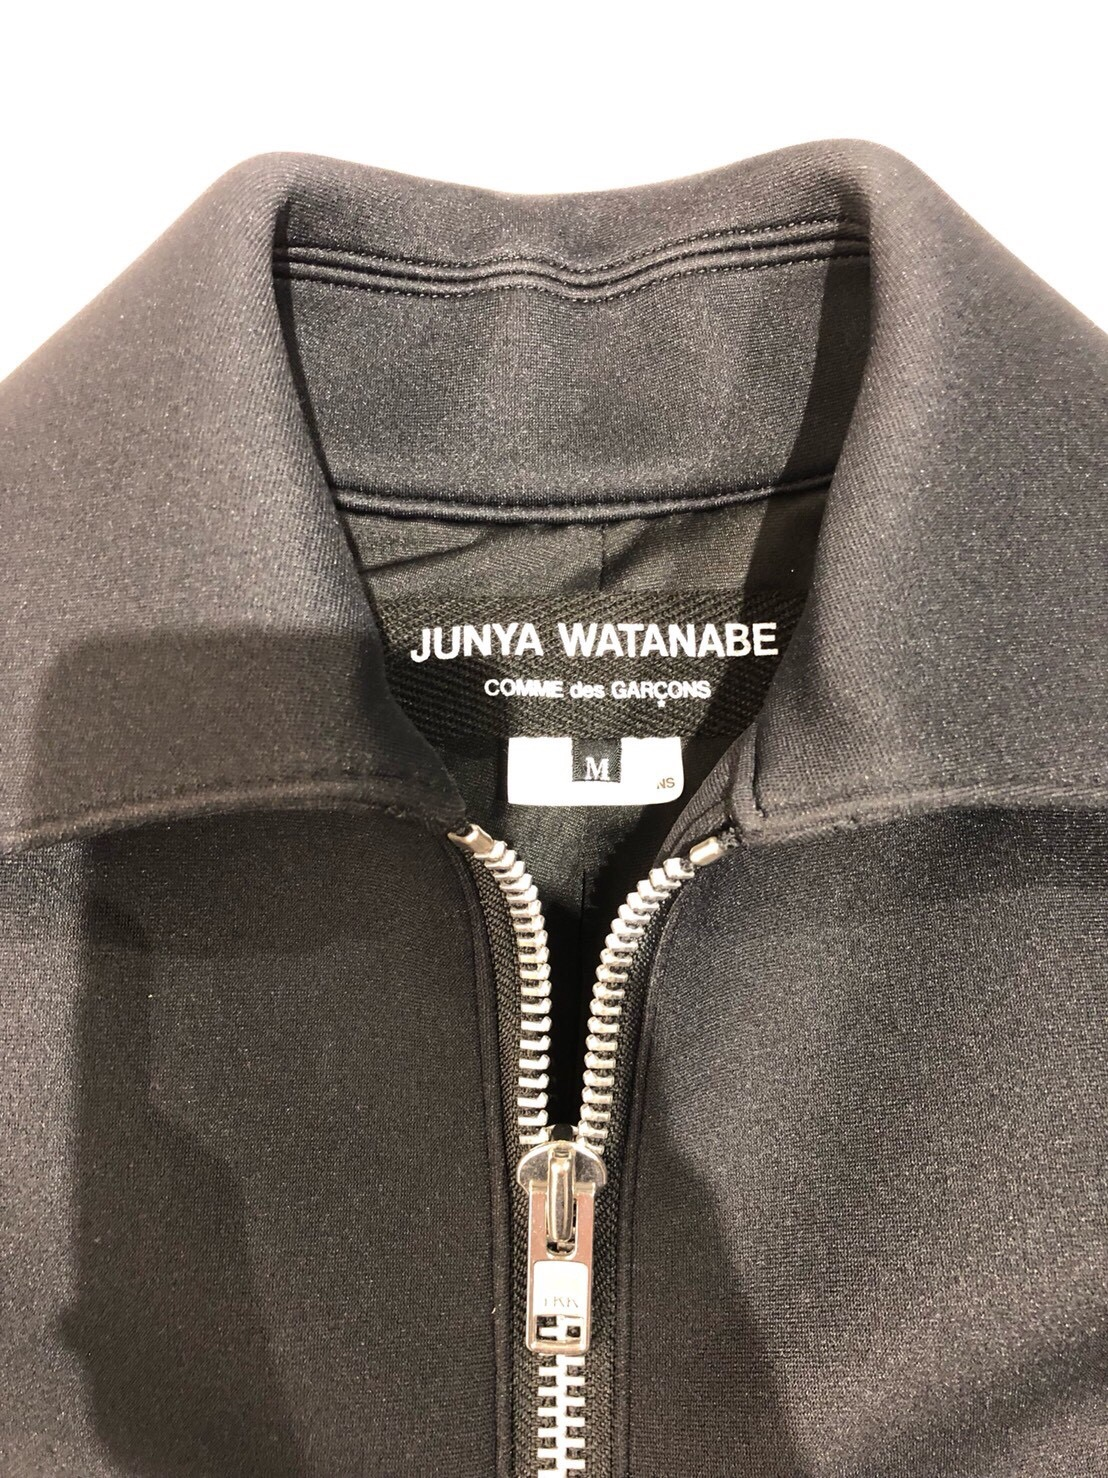 JUNYA WATANABE COMME des GARCONS